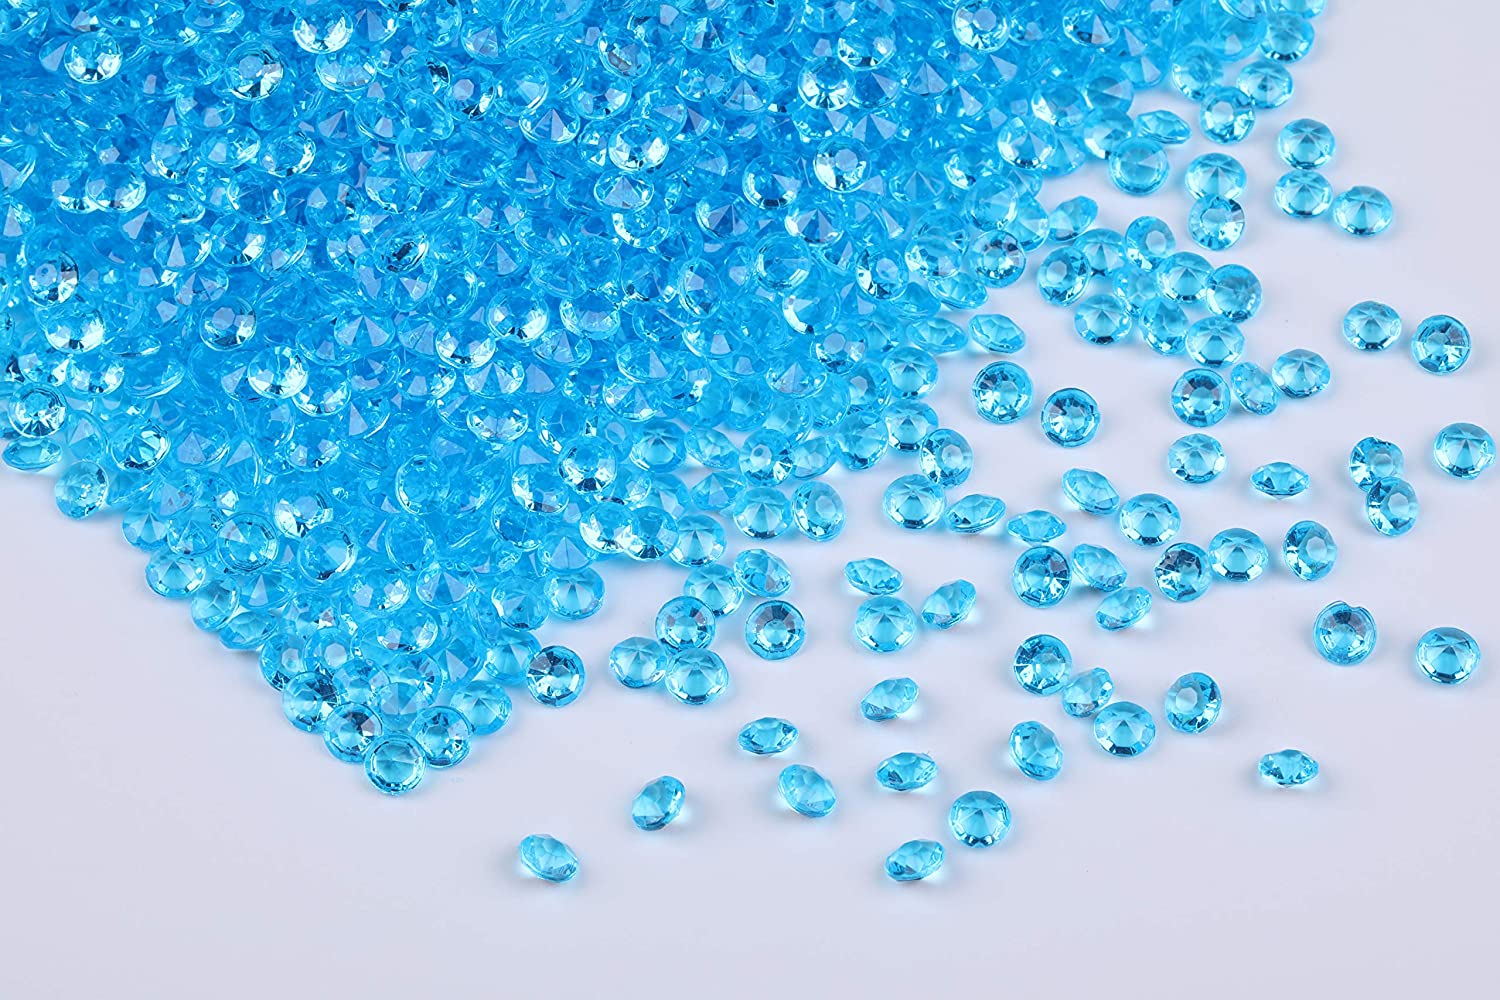 Gintoaria 10000 pcs/Pack Wedding Table Scatter Confetti Crystals Acrylic Diamonds Vase Fillers 4.5 mm Rhinestones for Wedding, Bridal Shower, Vase Beads Decorations (Lake Blue)